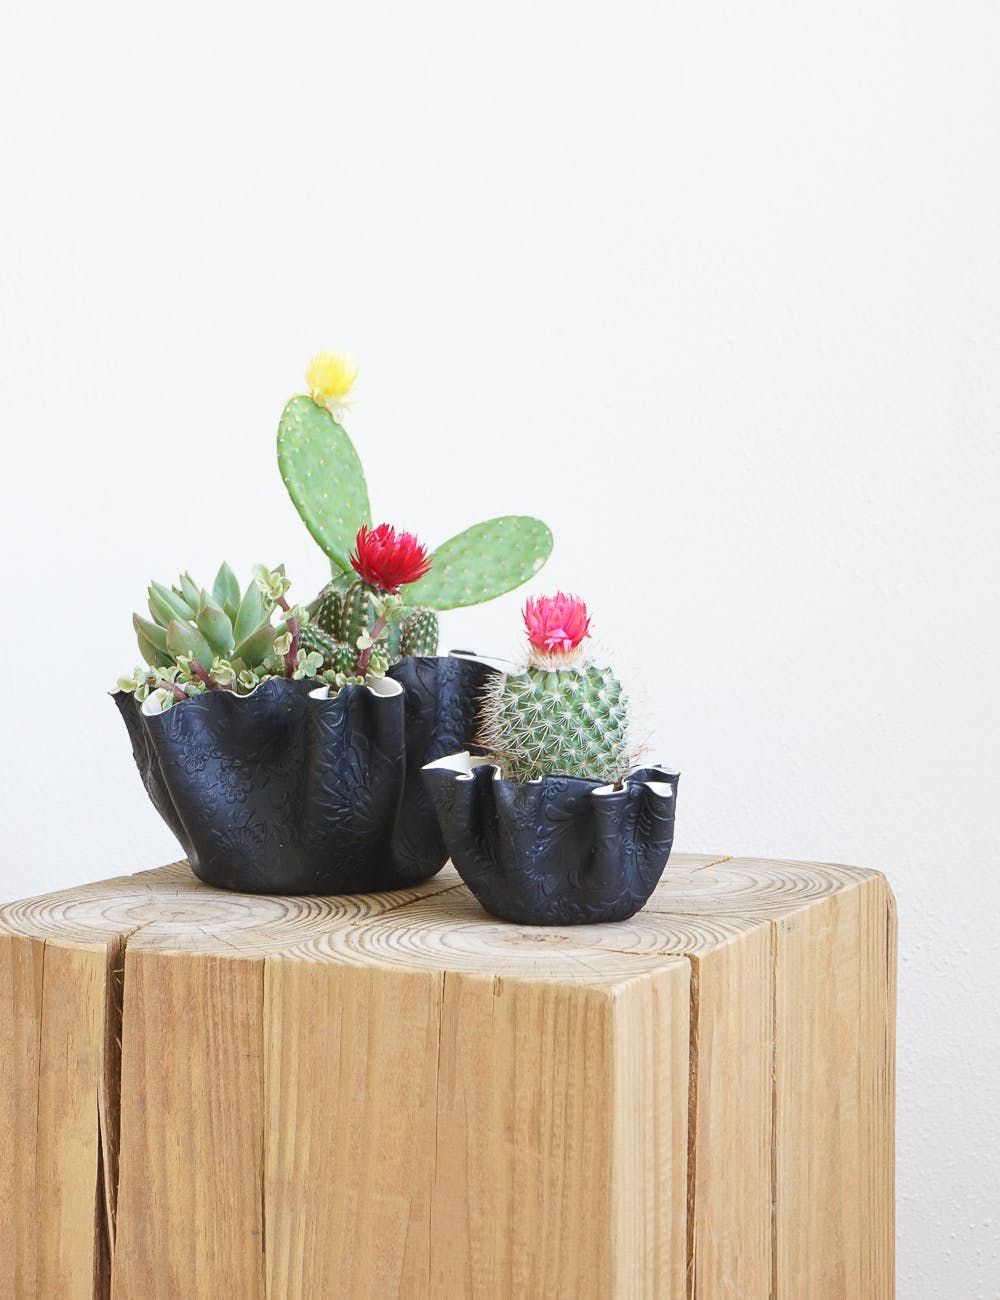 Make These Fabric Clay Planters For All Your Cute Cacti — Apartment Therapy Tutorials